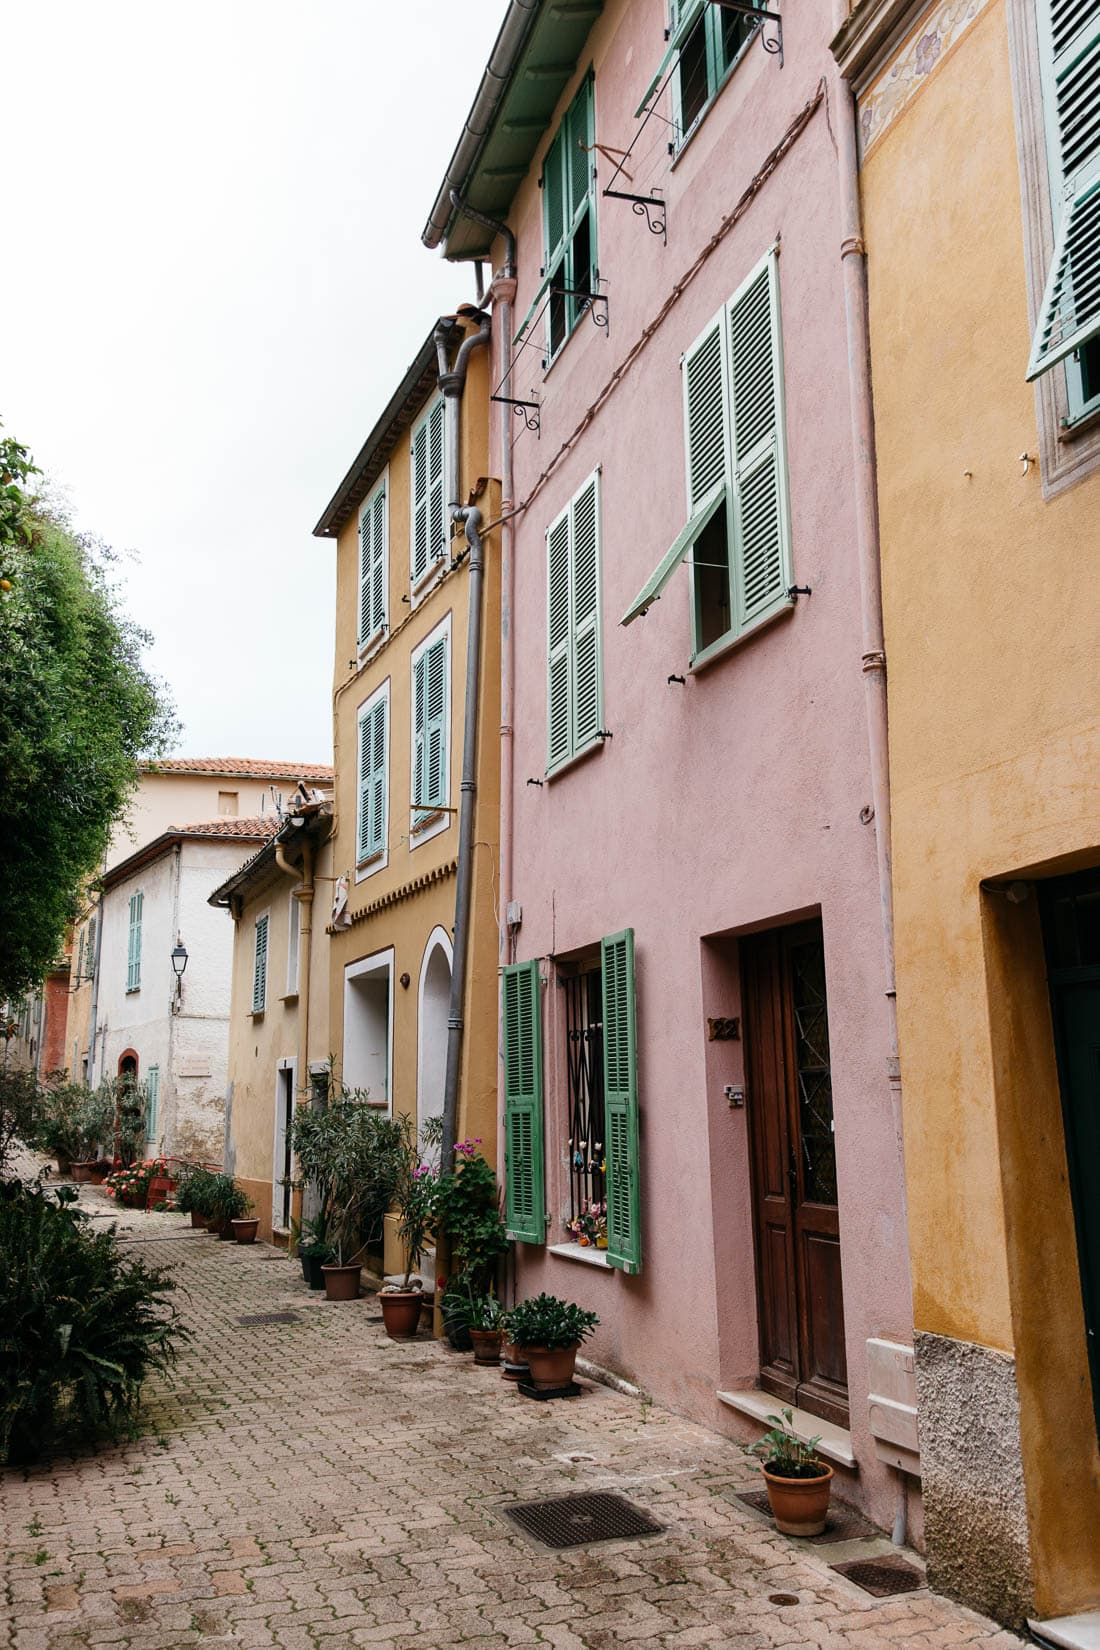 How to plan a trip to the south of France